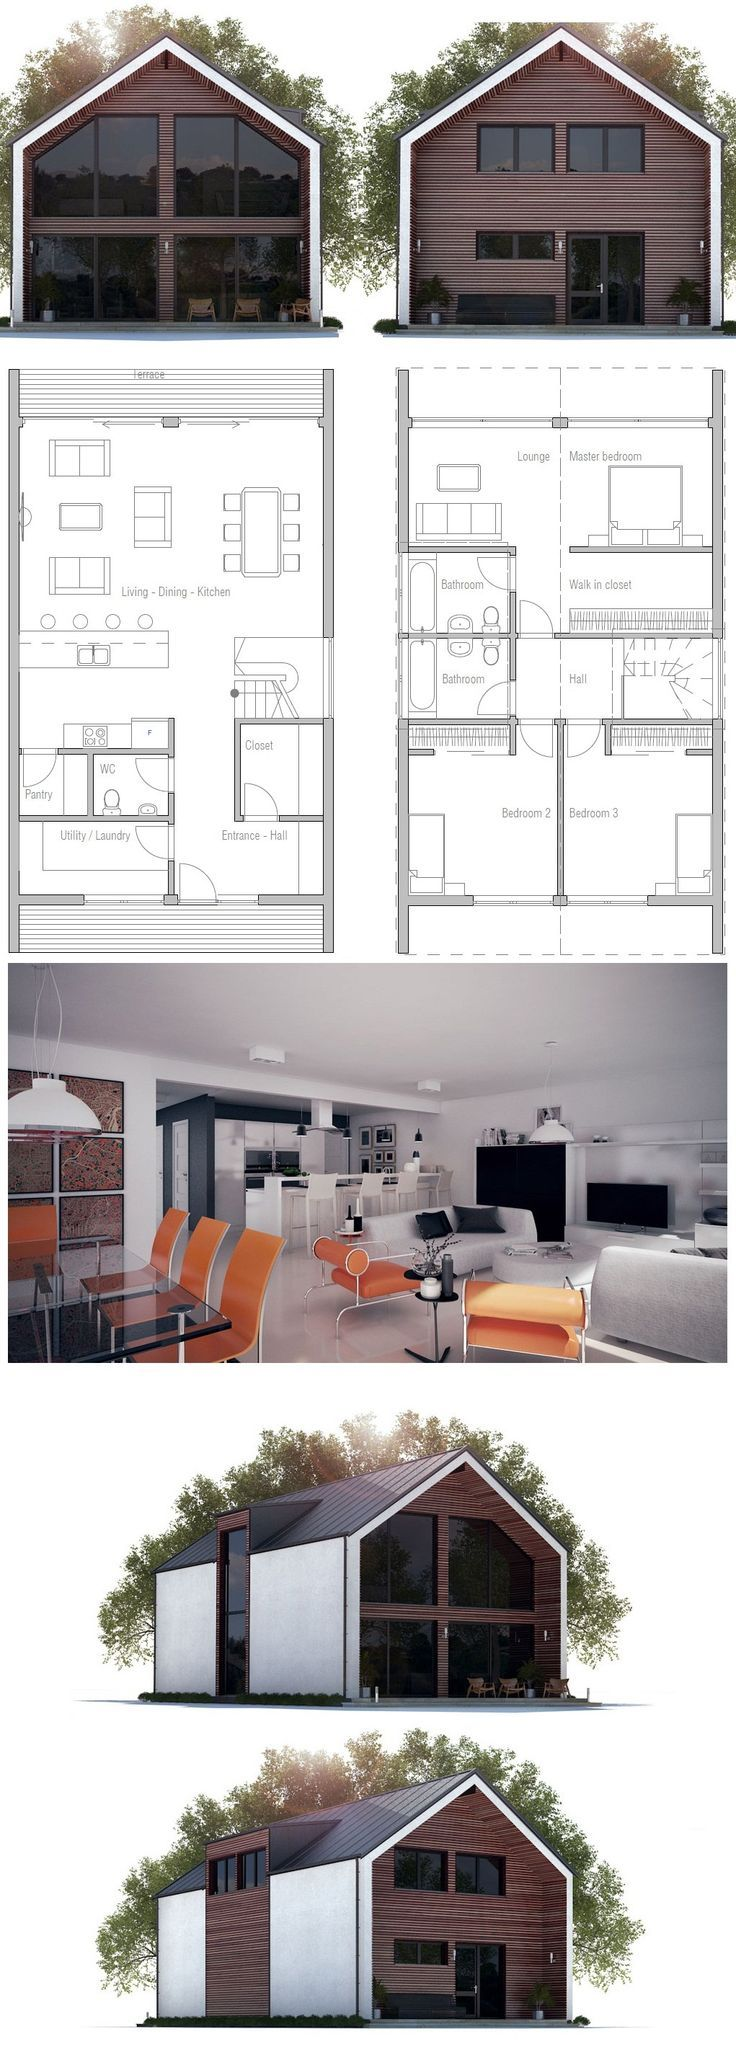 112 best house plans images on Pinterest